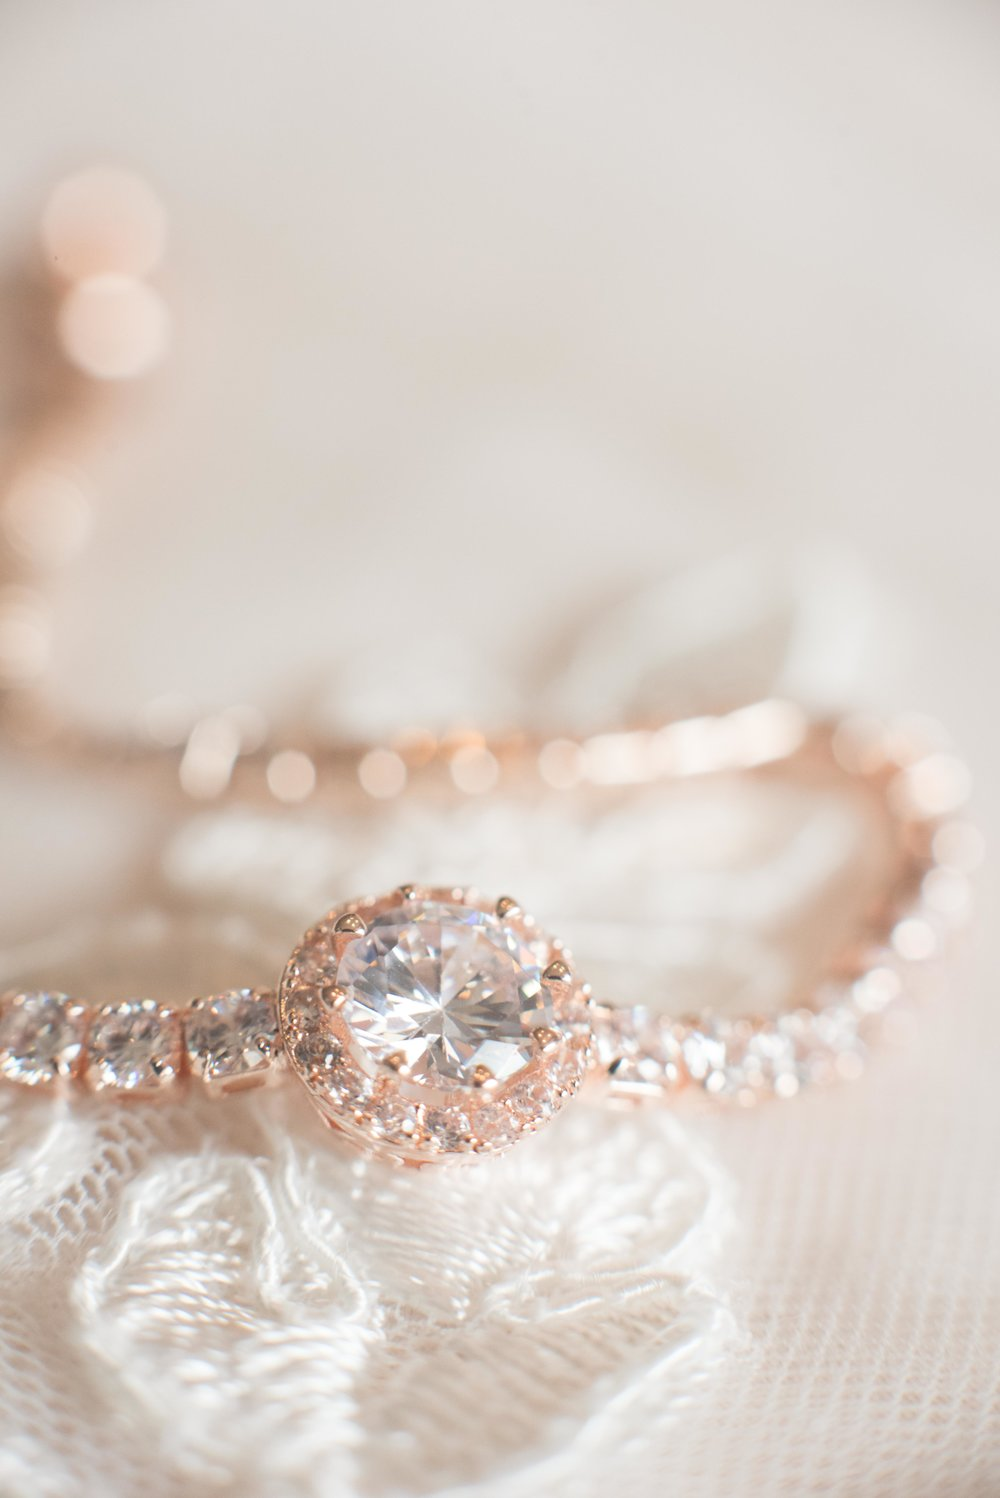 An elegant rose gold bridal bracelet with diamonds.  Perfect for the bride and her special jewelry for wedding day.